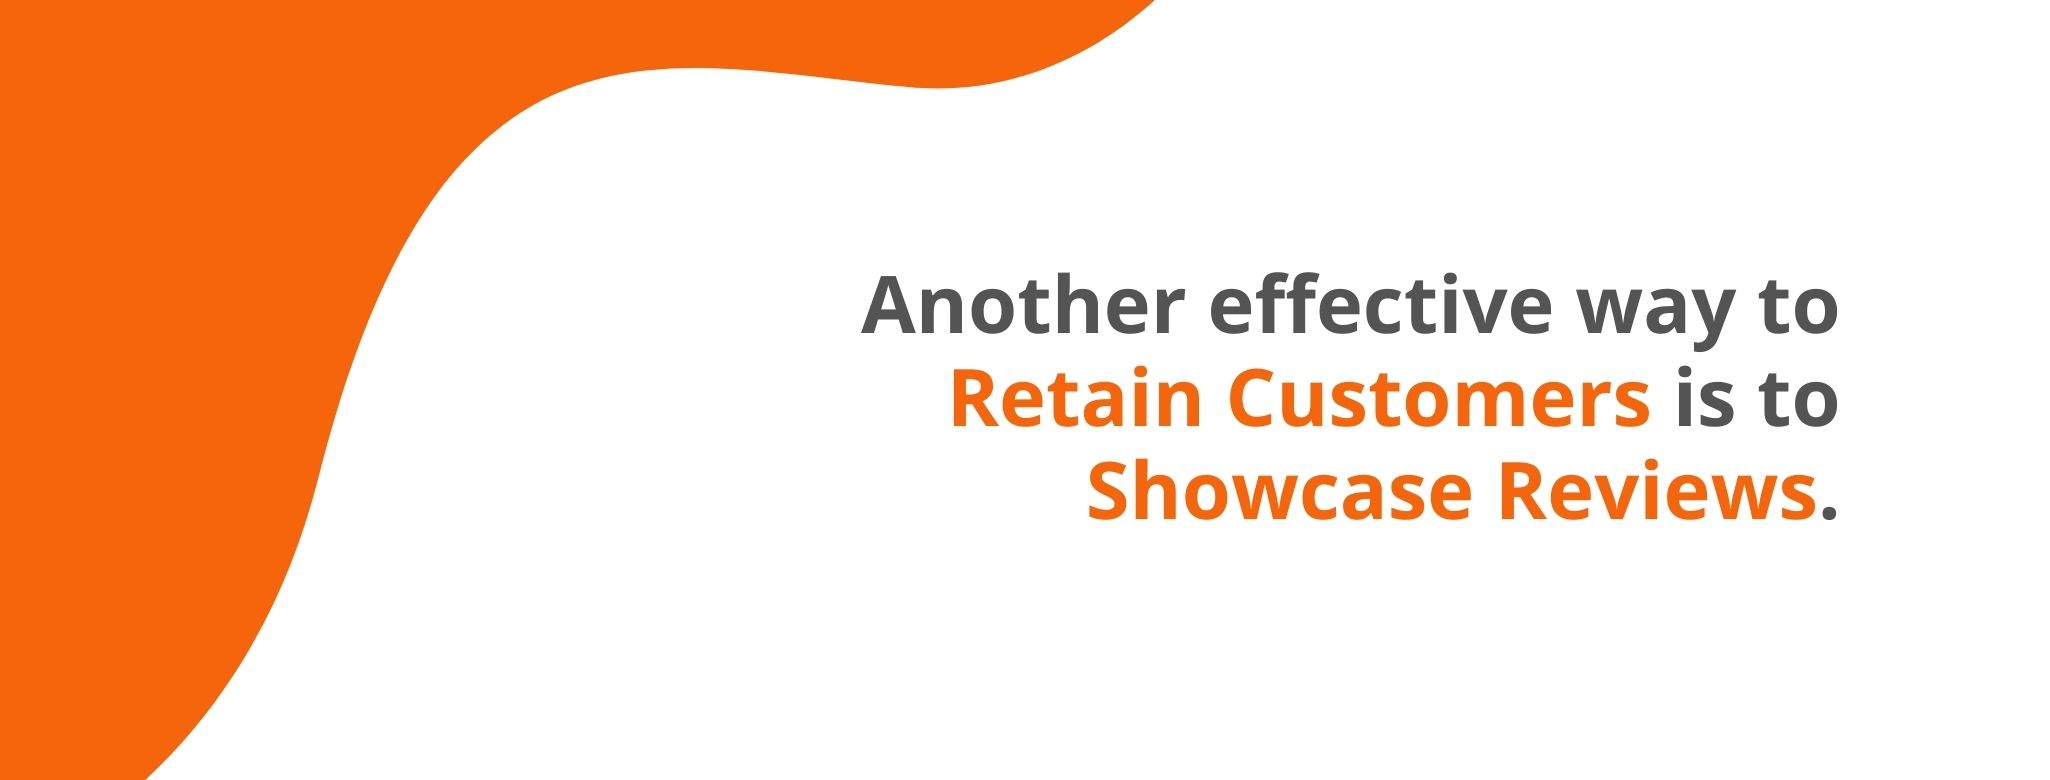 Another effective way to retain customers is to showcase reviews - 32 Customer Retention Strategies - Replyco